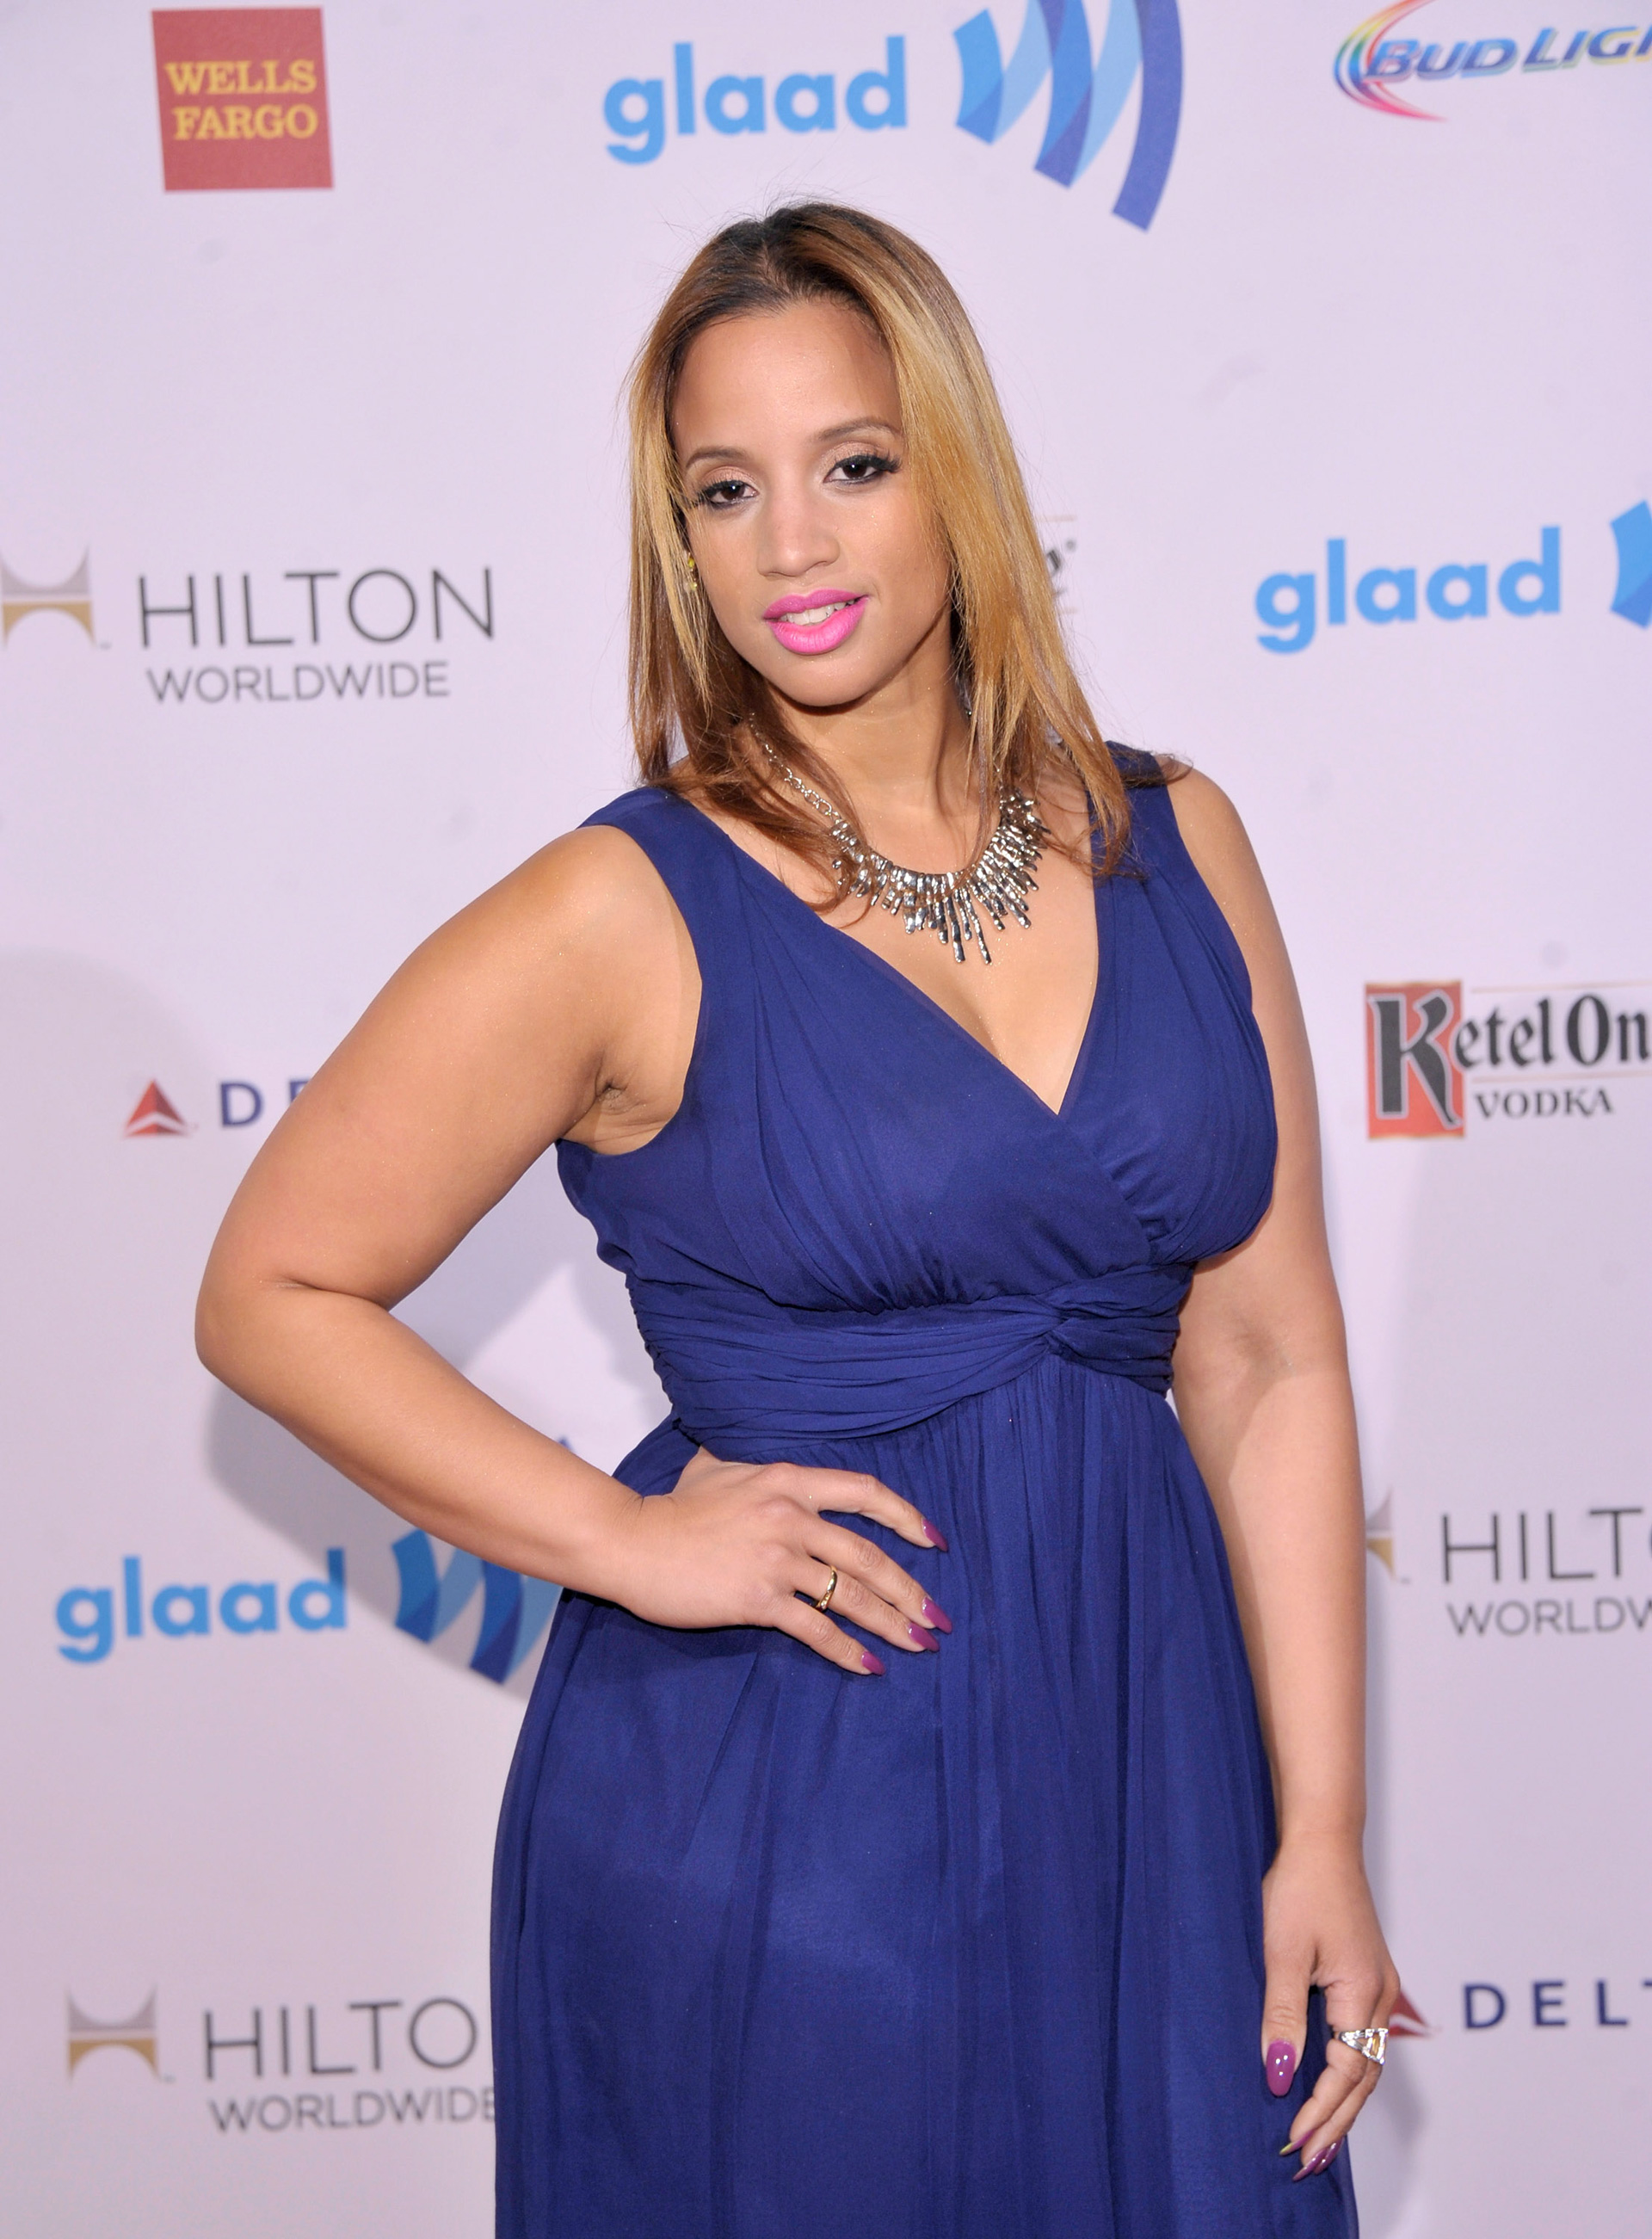 Dascha Polanco S New Hair Has An Eerie Resemblance To My Little Pony S Tail